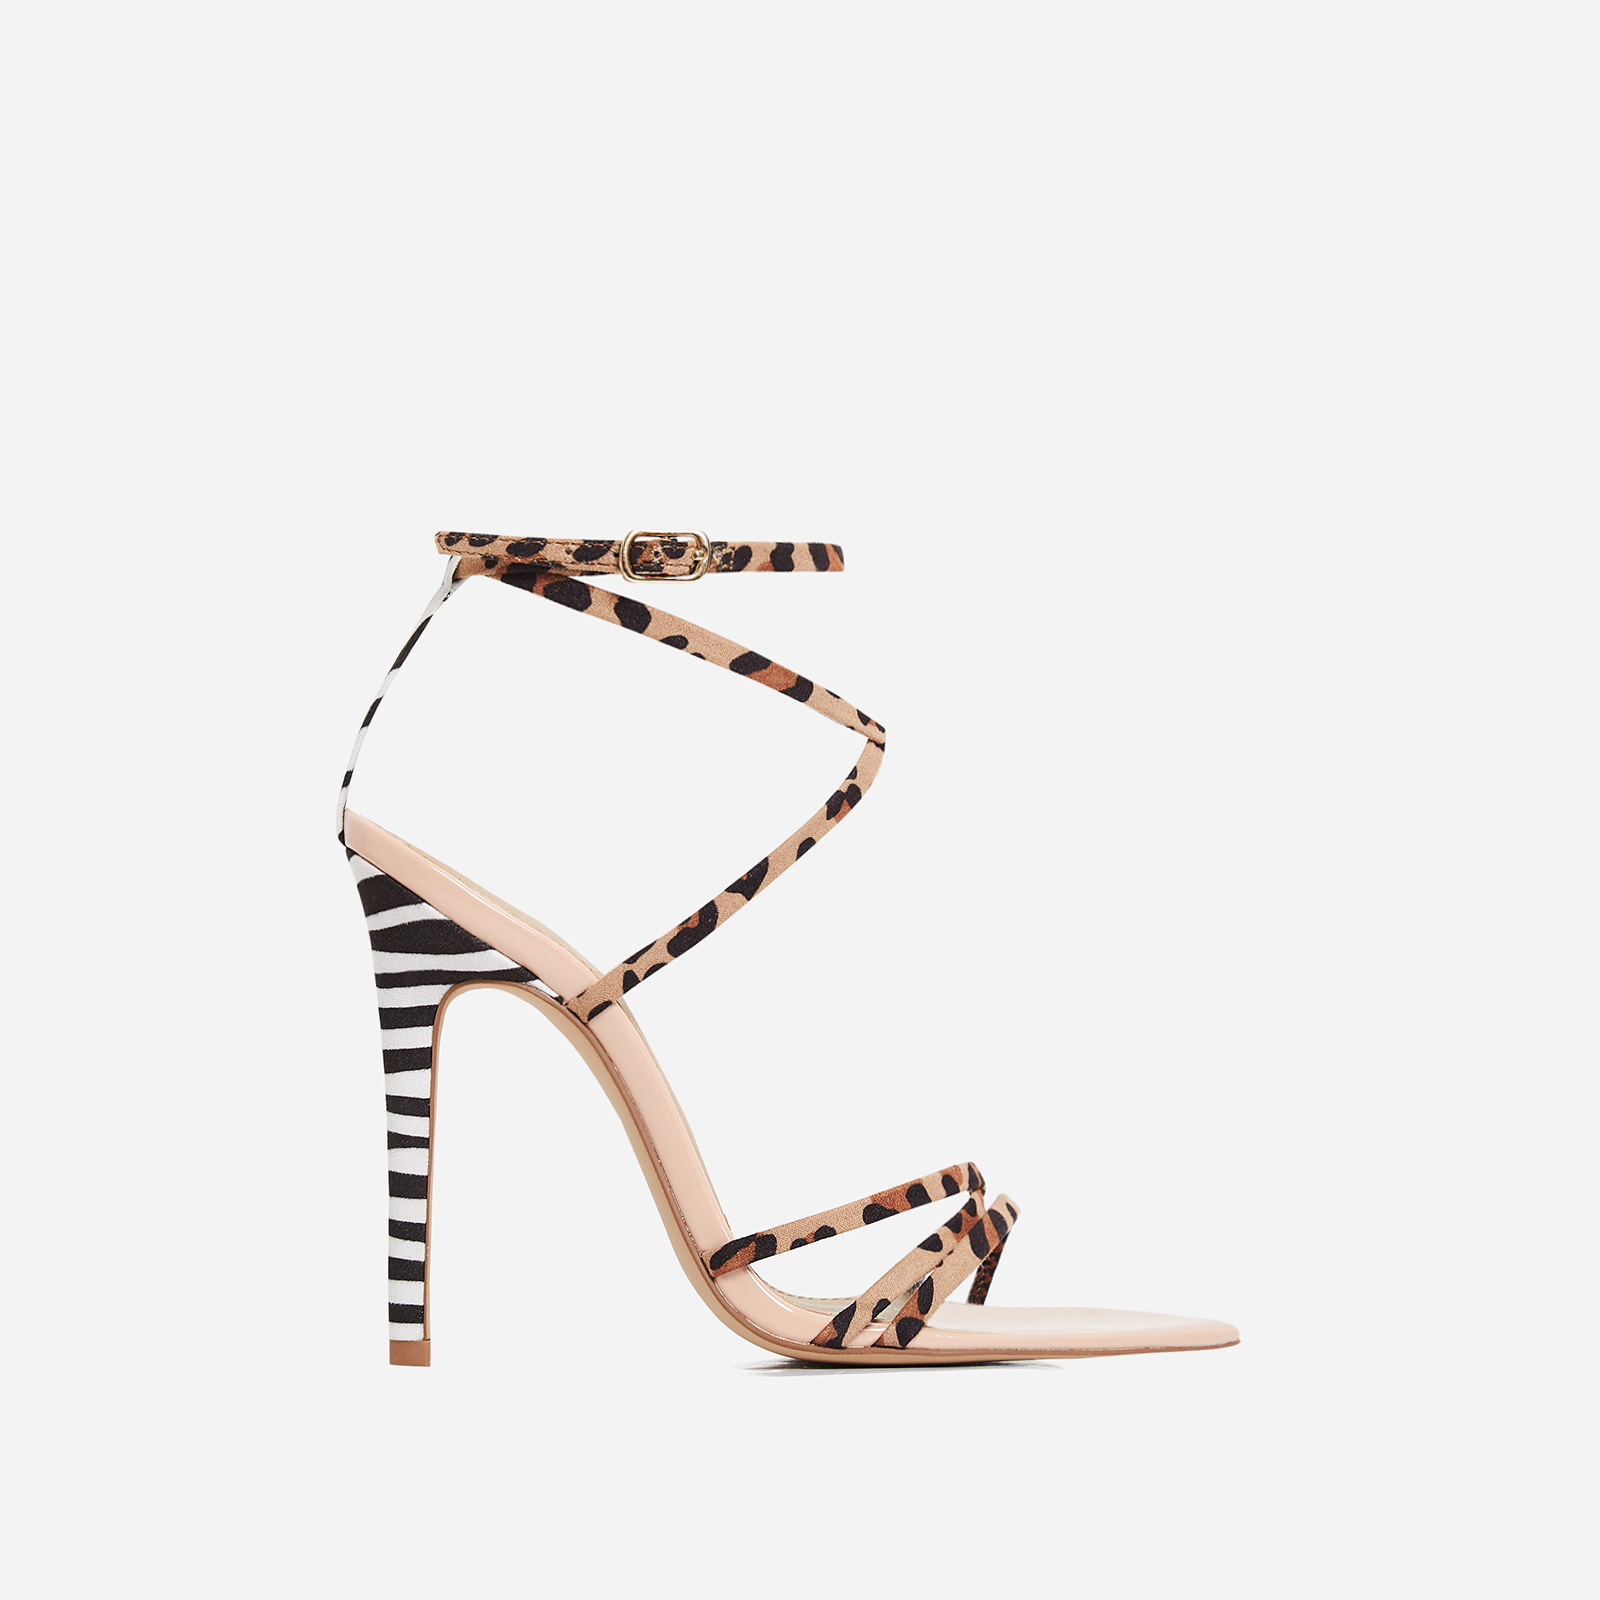 Raja Animal Print Pointed Barely There Heel In Nude Patent